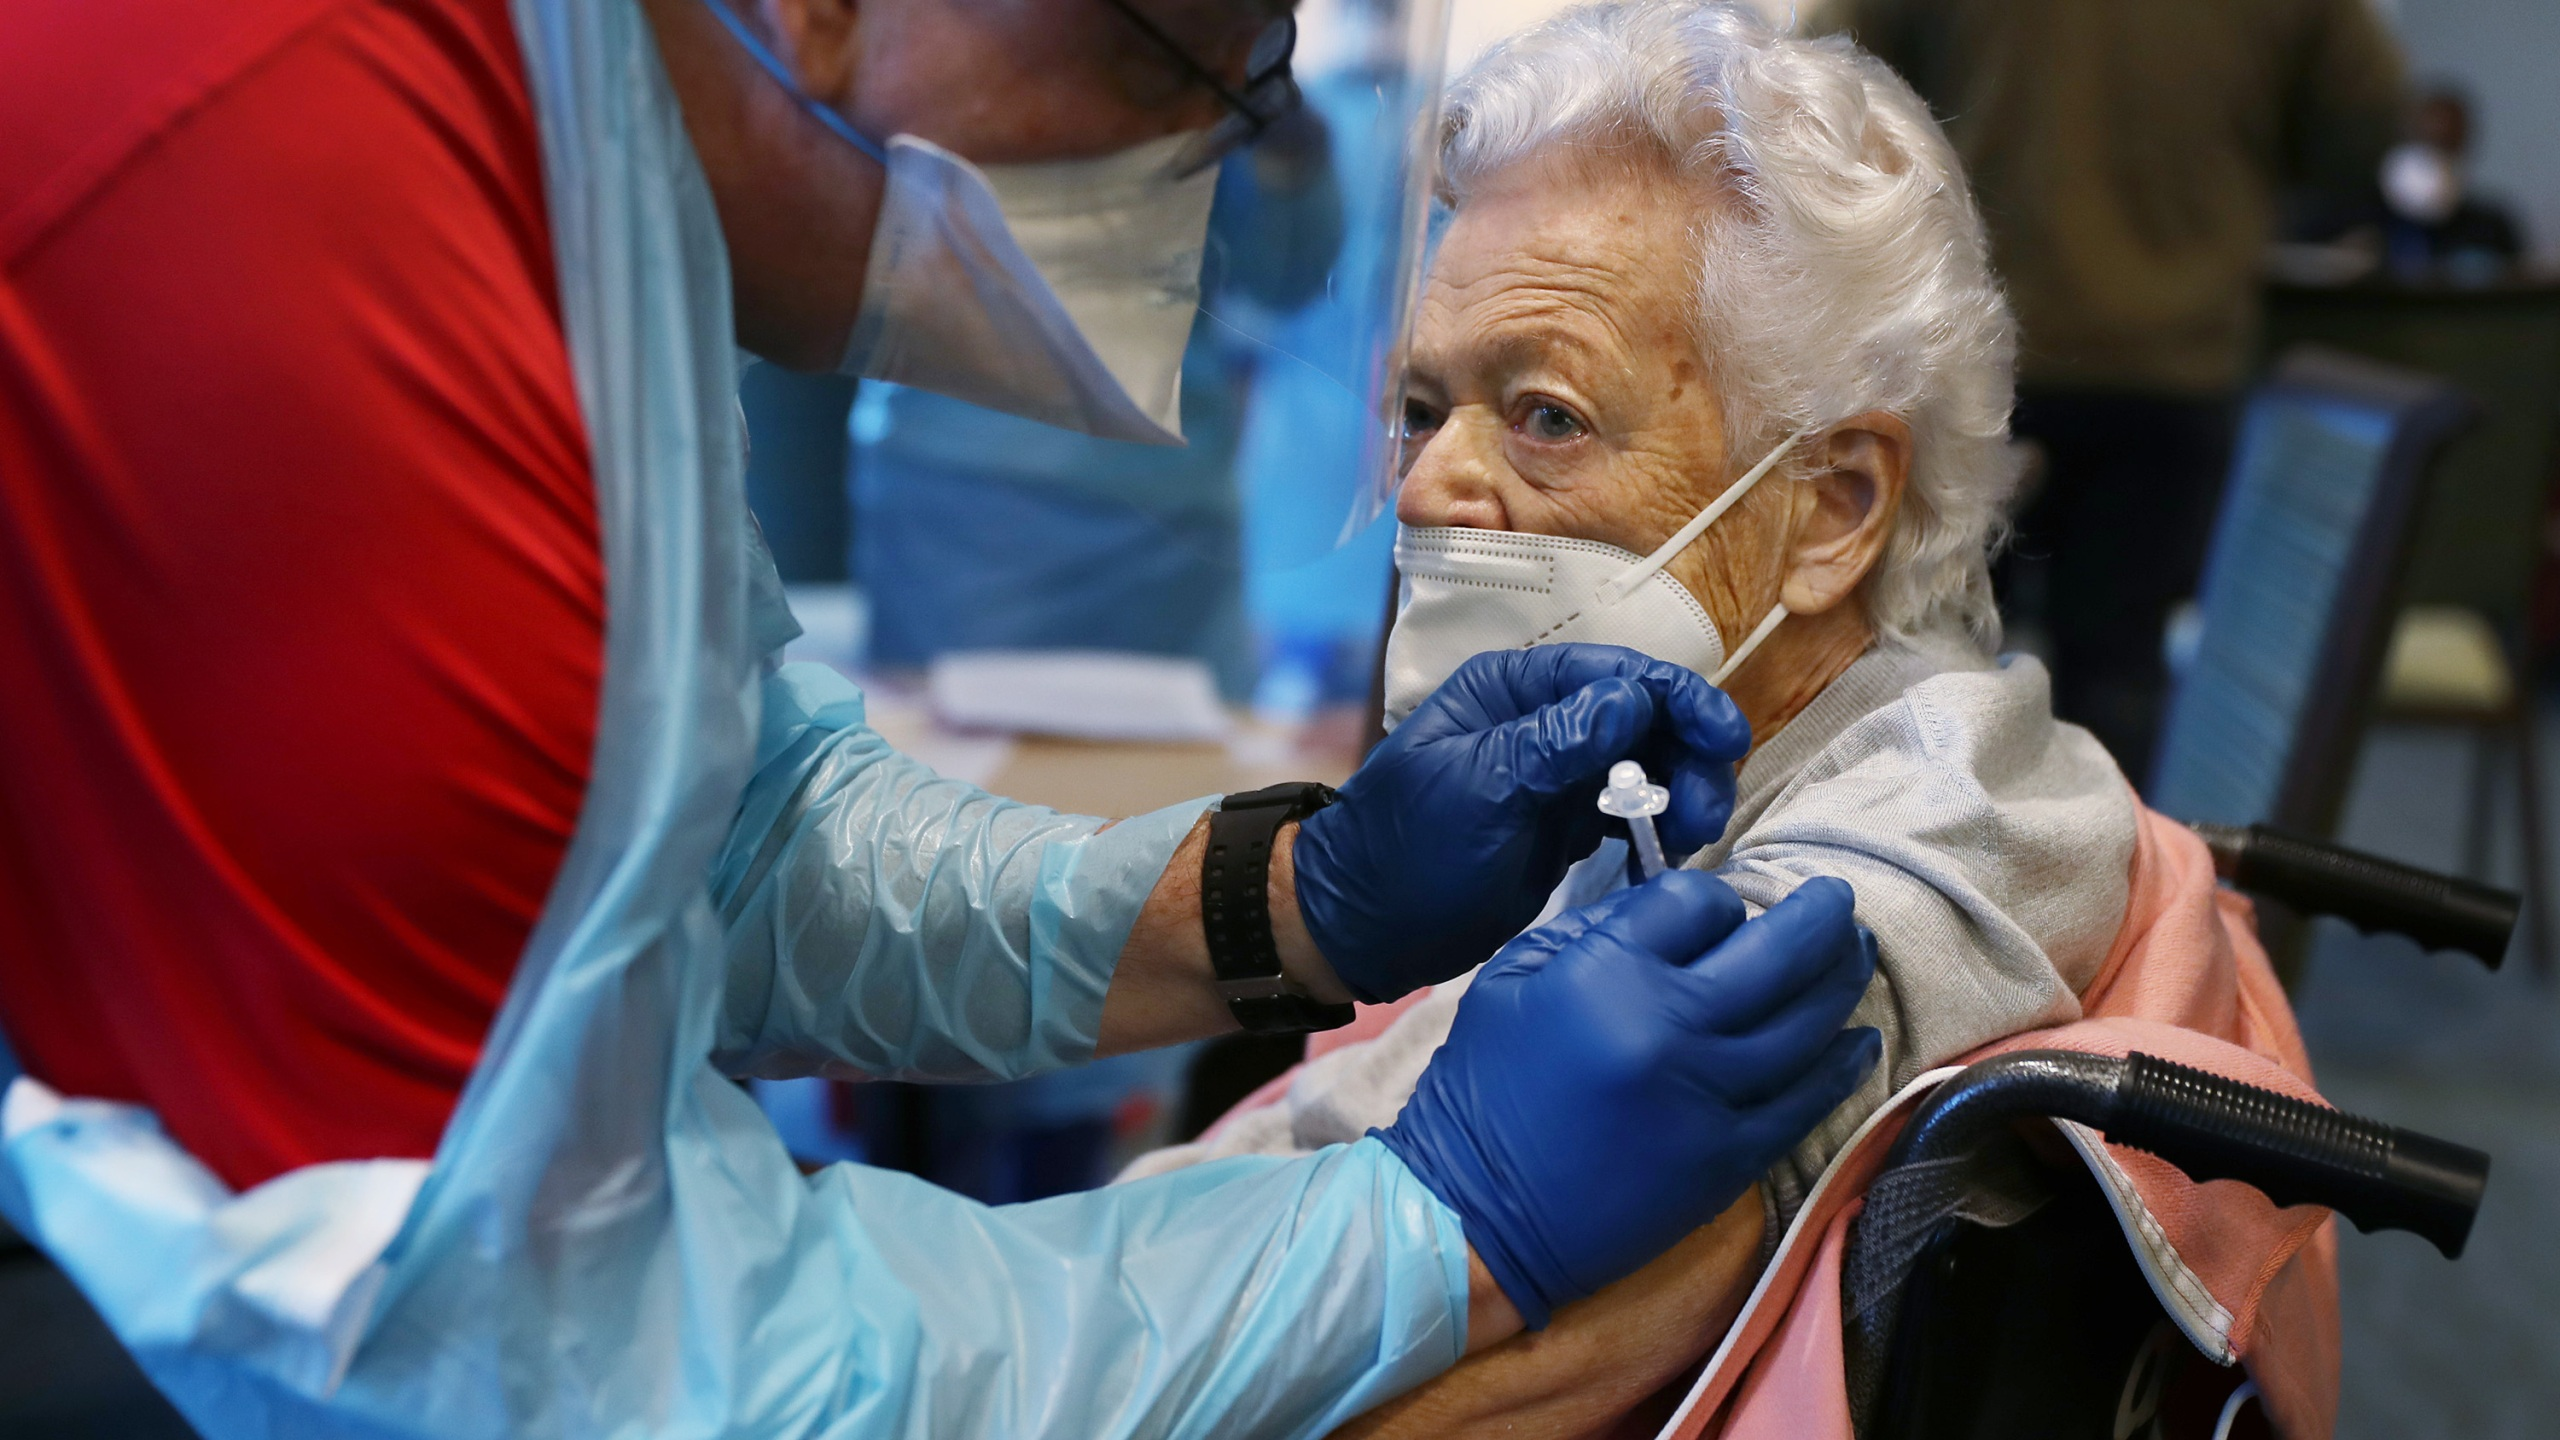 A healthcare worker working with the Florida Department of Health in Broward administers a Pfizer-BioNtech COVID-19 vaccine to Nancy Mathews, 90, at the John Knox Village Continuing Care Retirement Community on Jan. 6, 2021 in Pompano Beach, Florida. (Raedle/Getty Images)